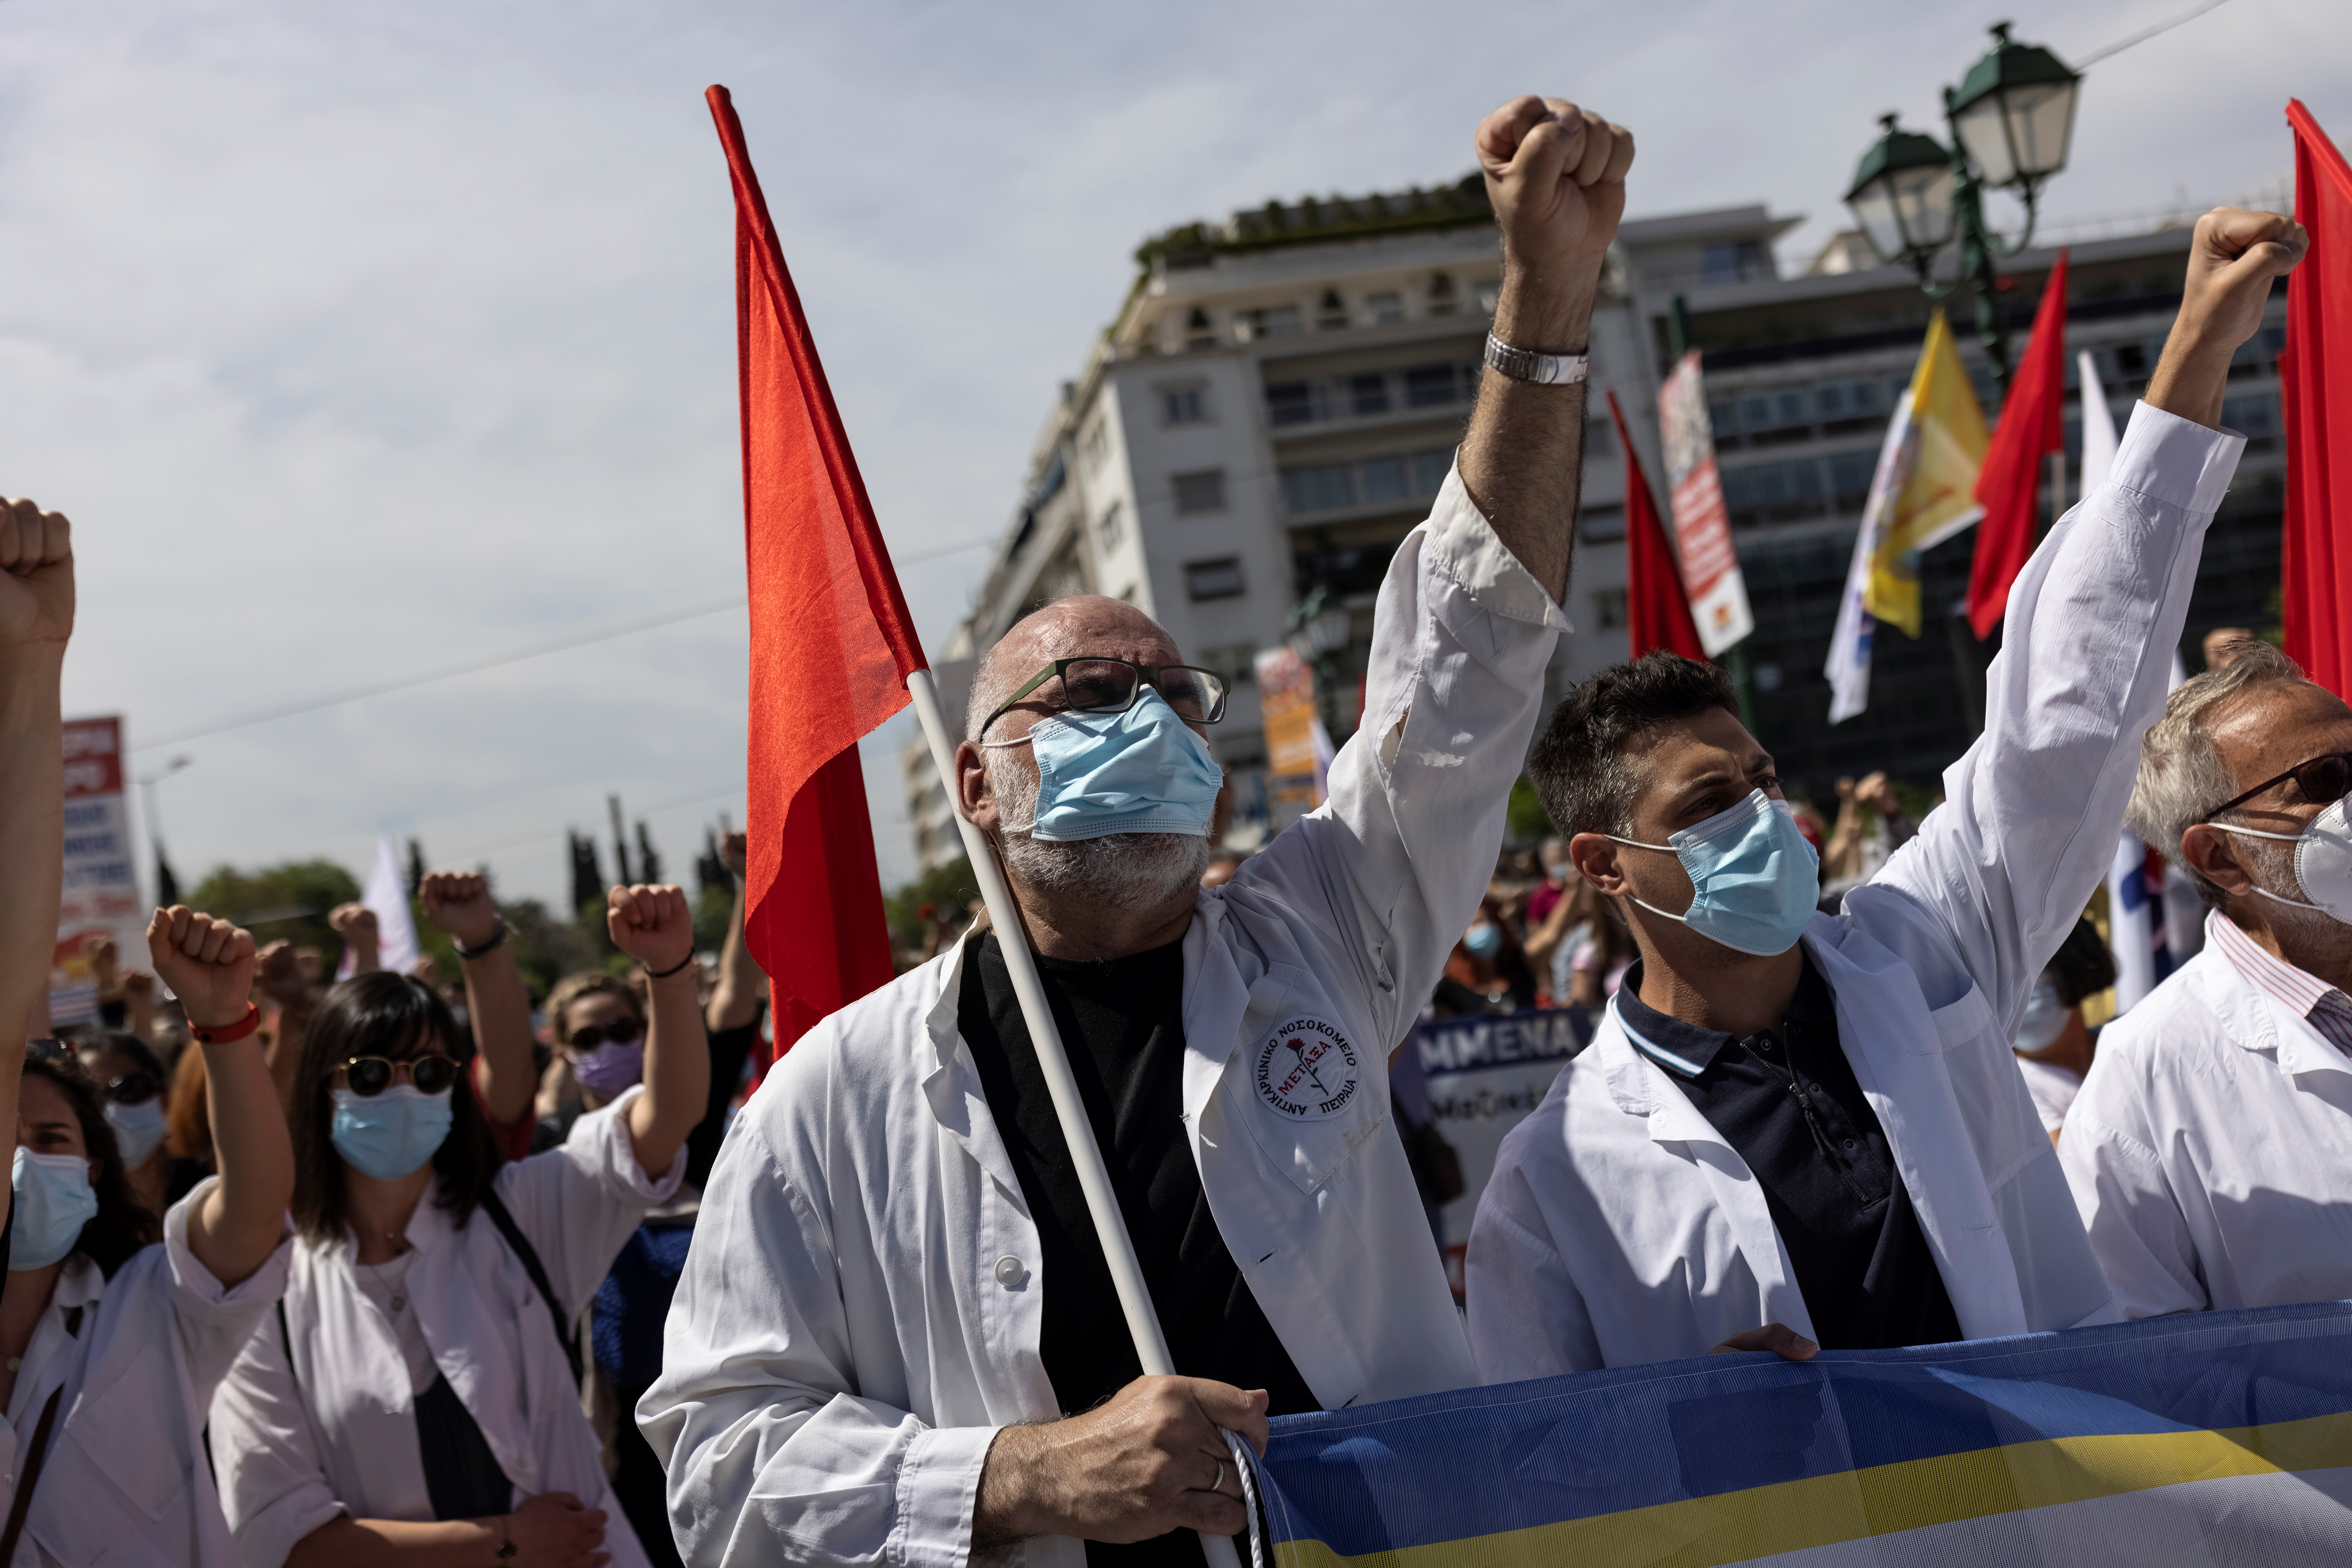 Medical workers wearing protective face masks against the spread of the coronavirus disease (COVID-19), shout slogans during a rally organised by the communist-affiliated trade union PAME commemorating May Day, in Athens, Greece, May 6, 2021. REUTERS/Alkis Konstantinidis